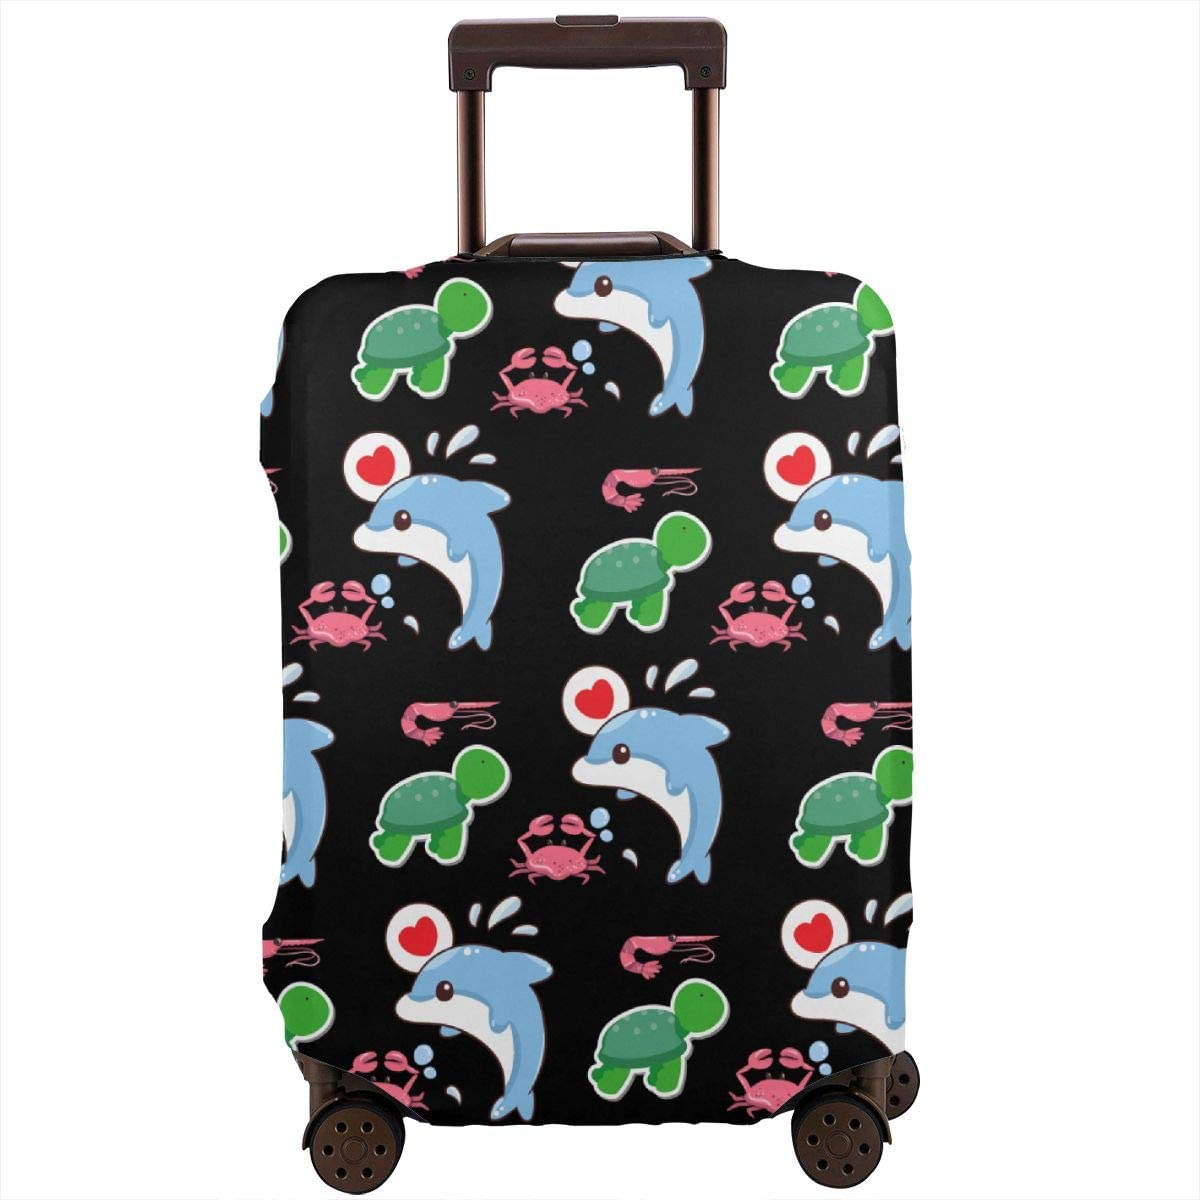 Luggage Cover Sea Anemone Crab Dolphin Turtle Protective Travel Trunk Case Elastic Luggage Suitcase Protector Cover